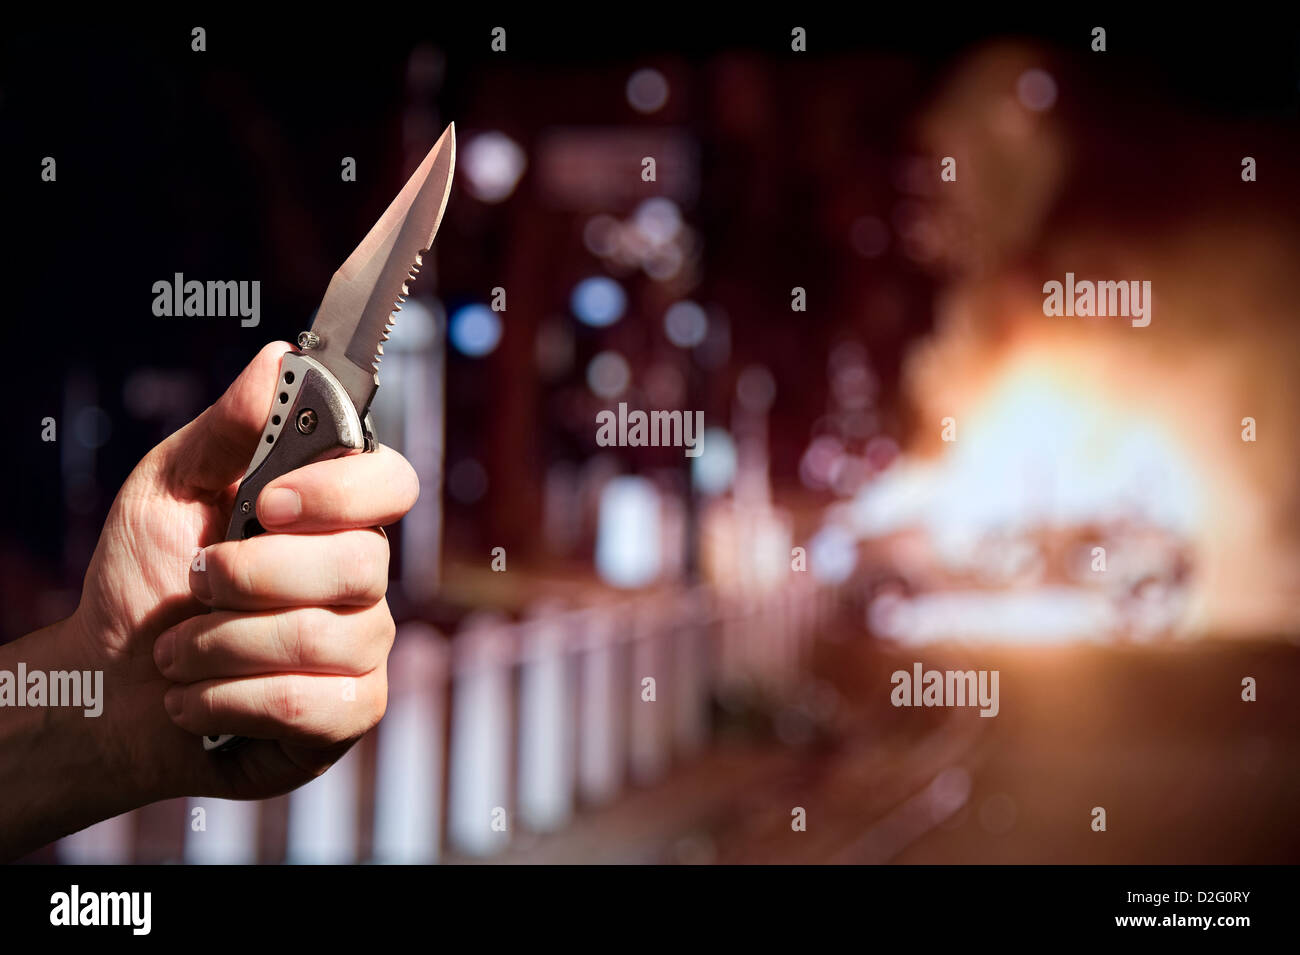 Street crime or knife crime - Hand holding a knife with a serrated edge while a car burns in the background, UK - Stock Image